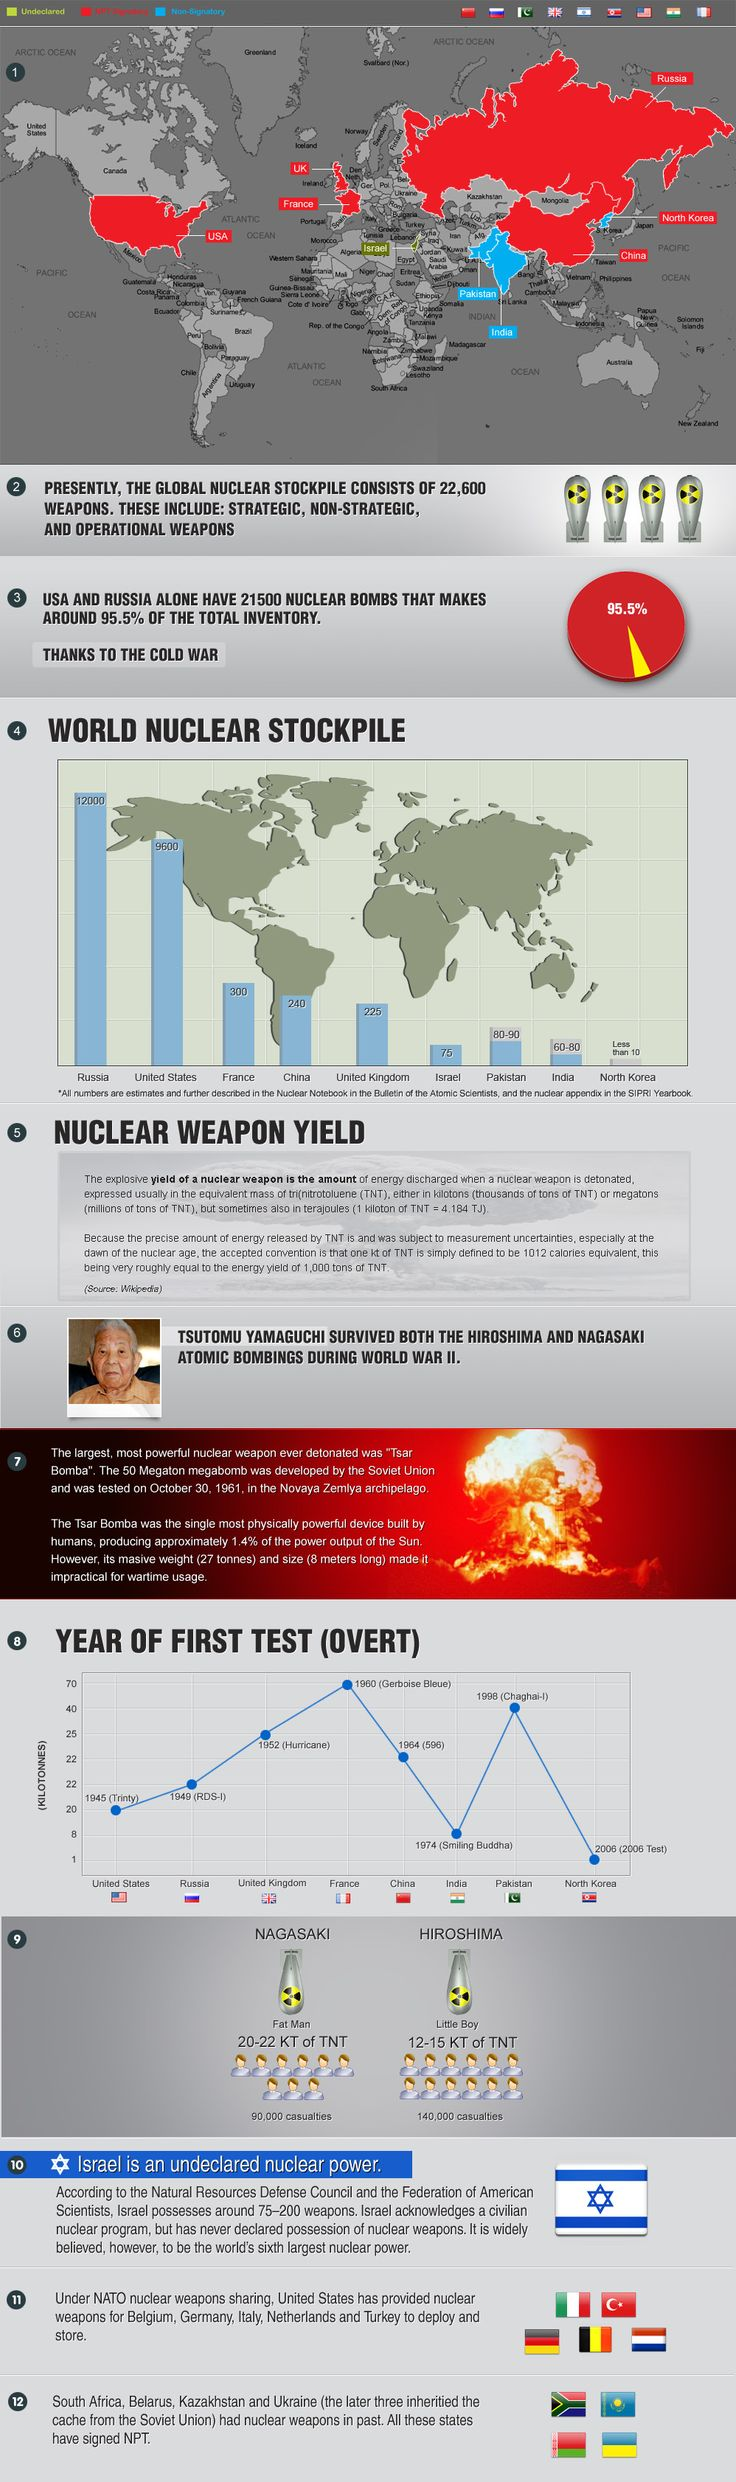 the history and the creation of atomic weapons